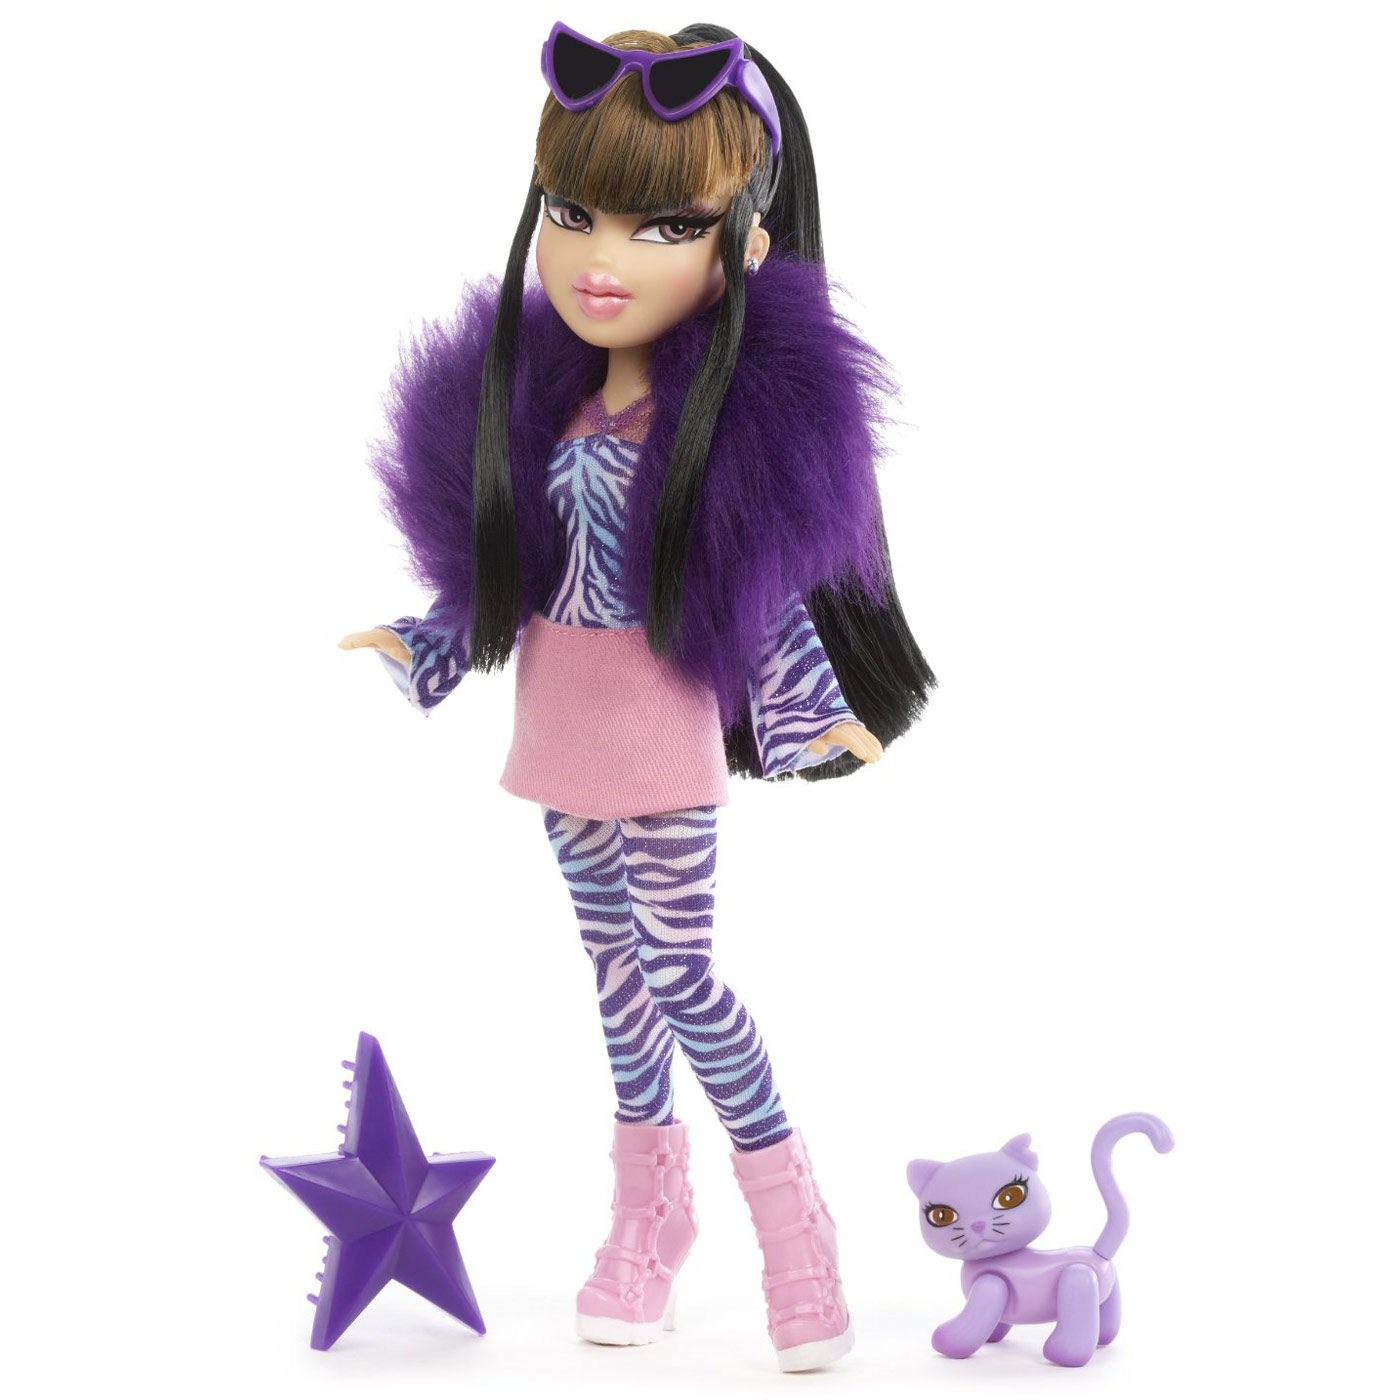 10 Girls Bratz Catz Fashion Doll With Pet Cat Cloe Yasmin Jade Or Meygan Ebay